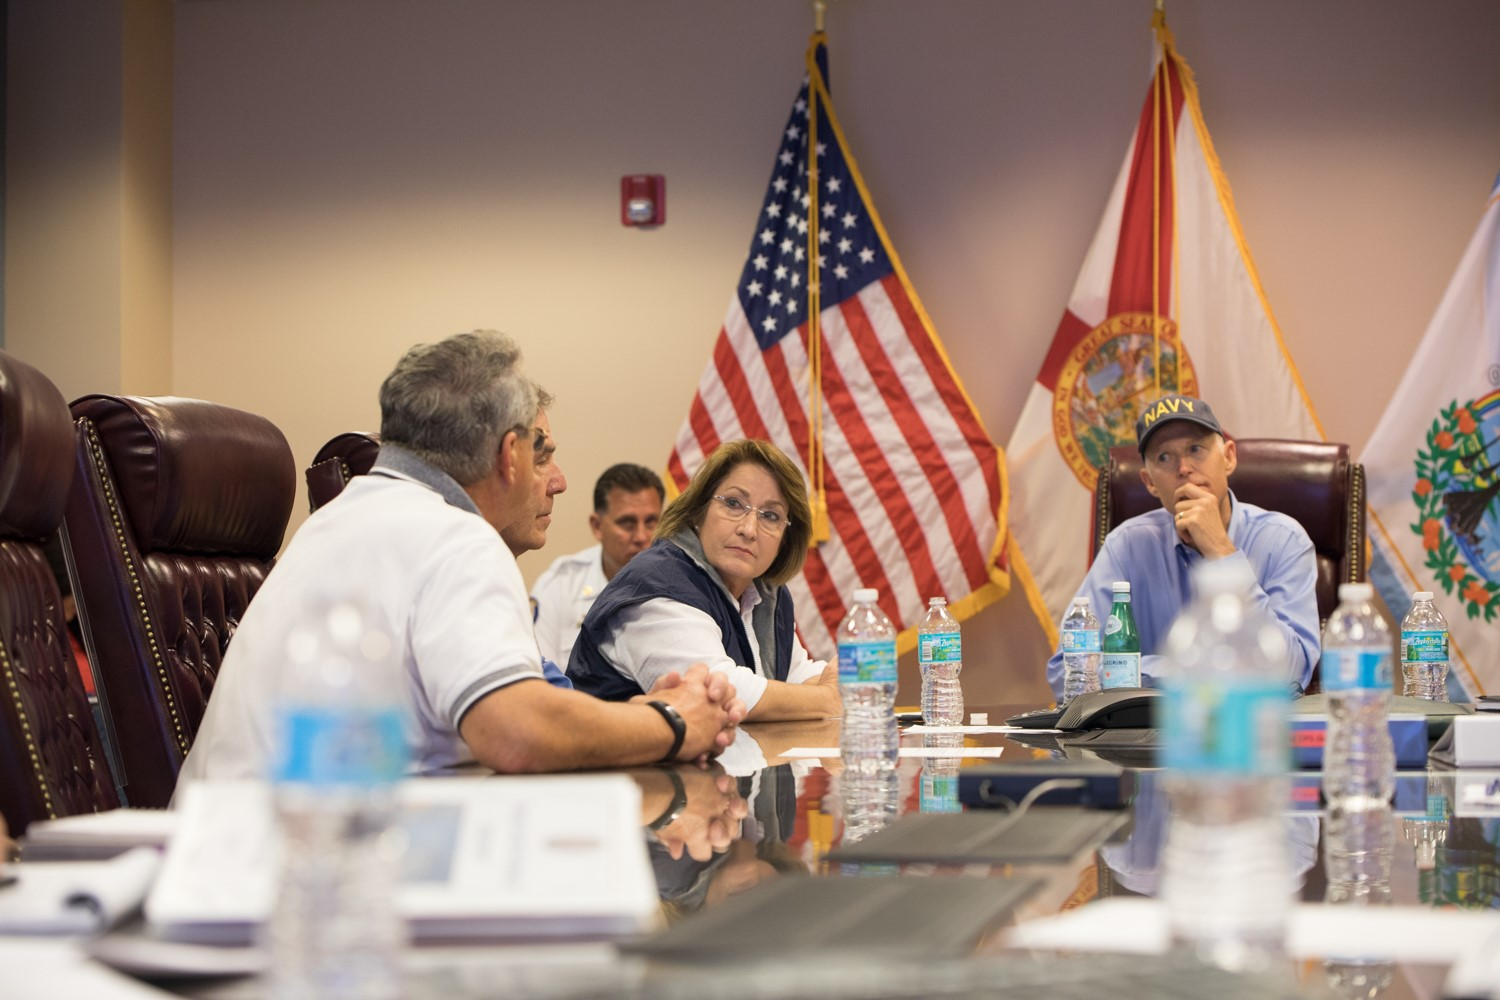 Mayor Teresa Jacobs and Florida Gov. Rick Scott discuss safety measures at a policy briefing at Orange County's Emergency Operation Center before the Hurricane Irma made landfall on Sept. 11, 2017.